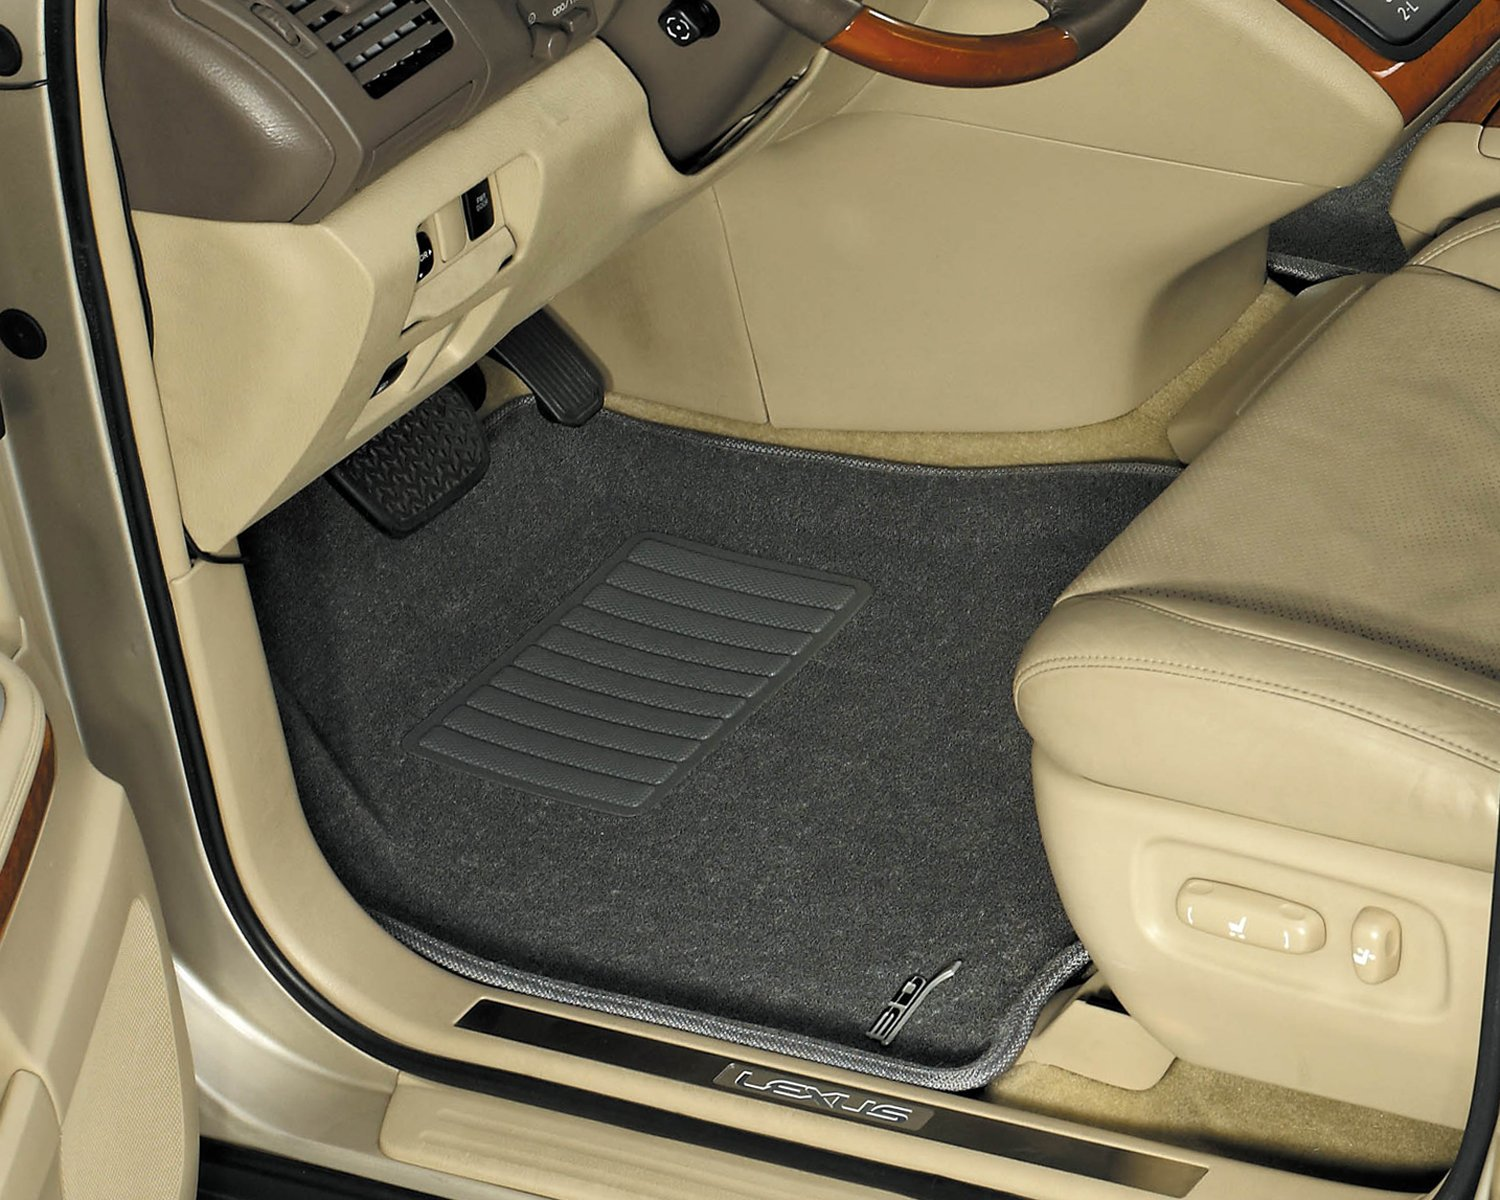 Black Classic Carpet 3D MAXpider Second Row Custom Fit All-Weather Floor Mat for Select Acura ILX Models